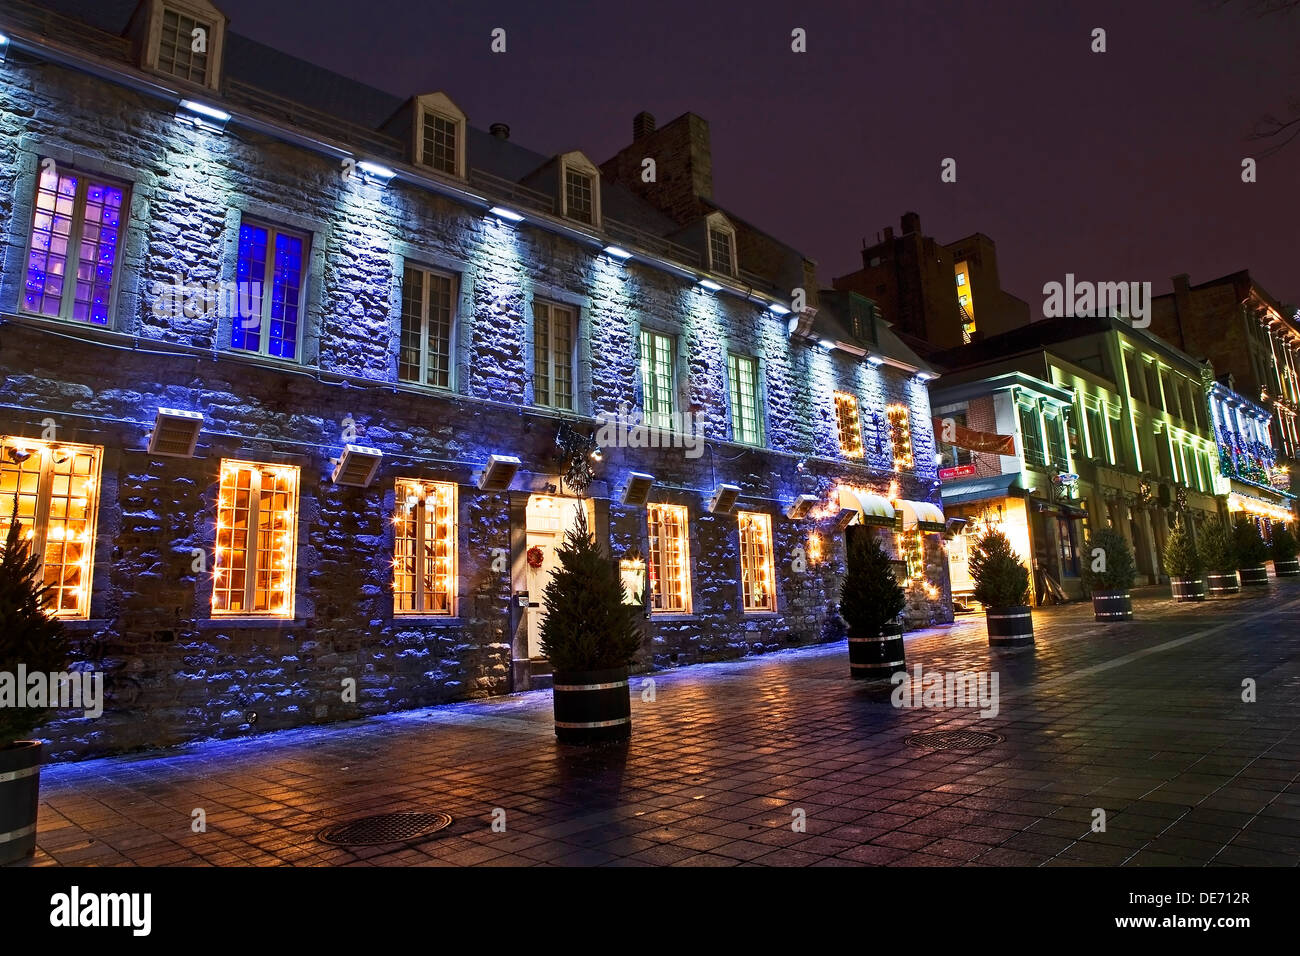 Old stone buildings at Jacques-Cartier Place Montreal Canada are lit by colorful lights during Christmas & Old stone buildings at Jacques-Cartier Place Montreal Canada are ... azcodes.com